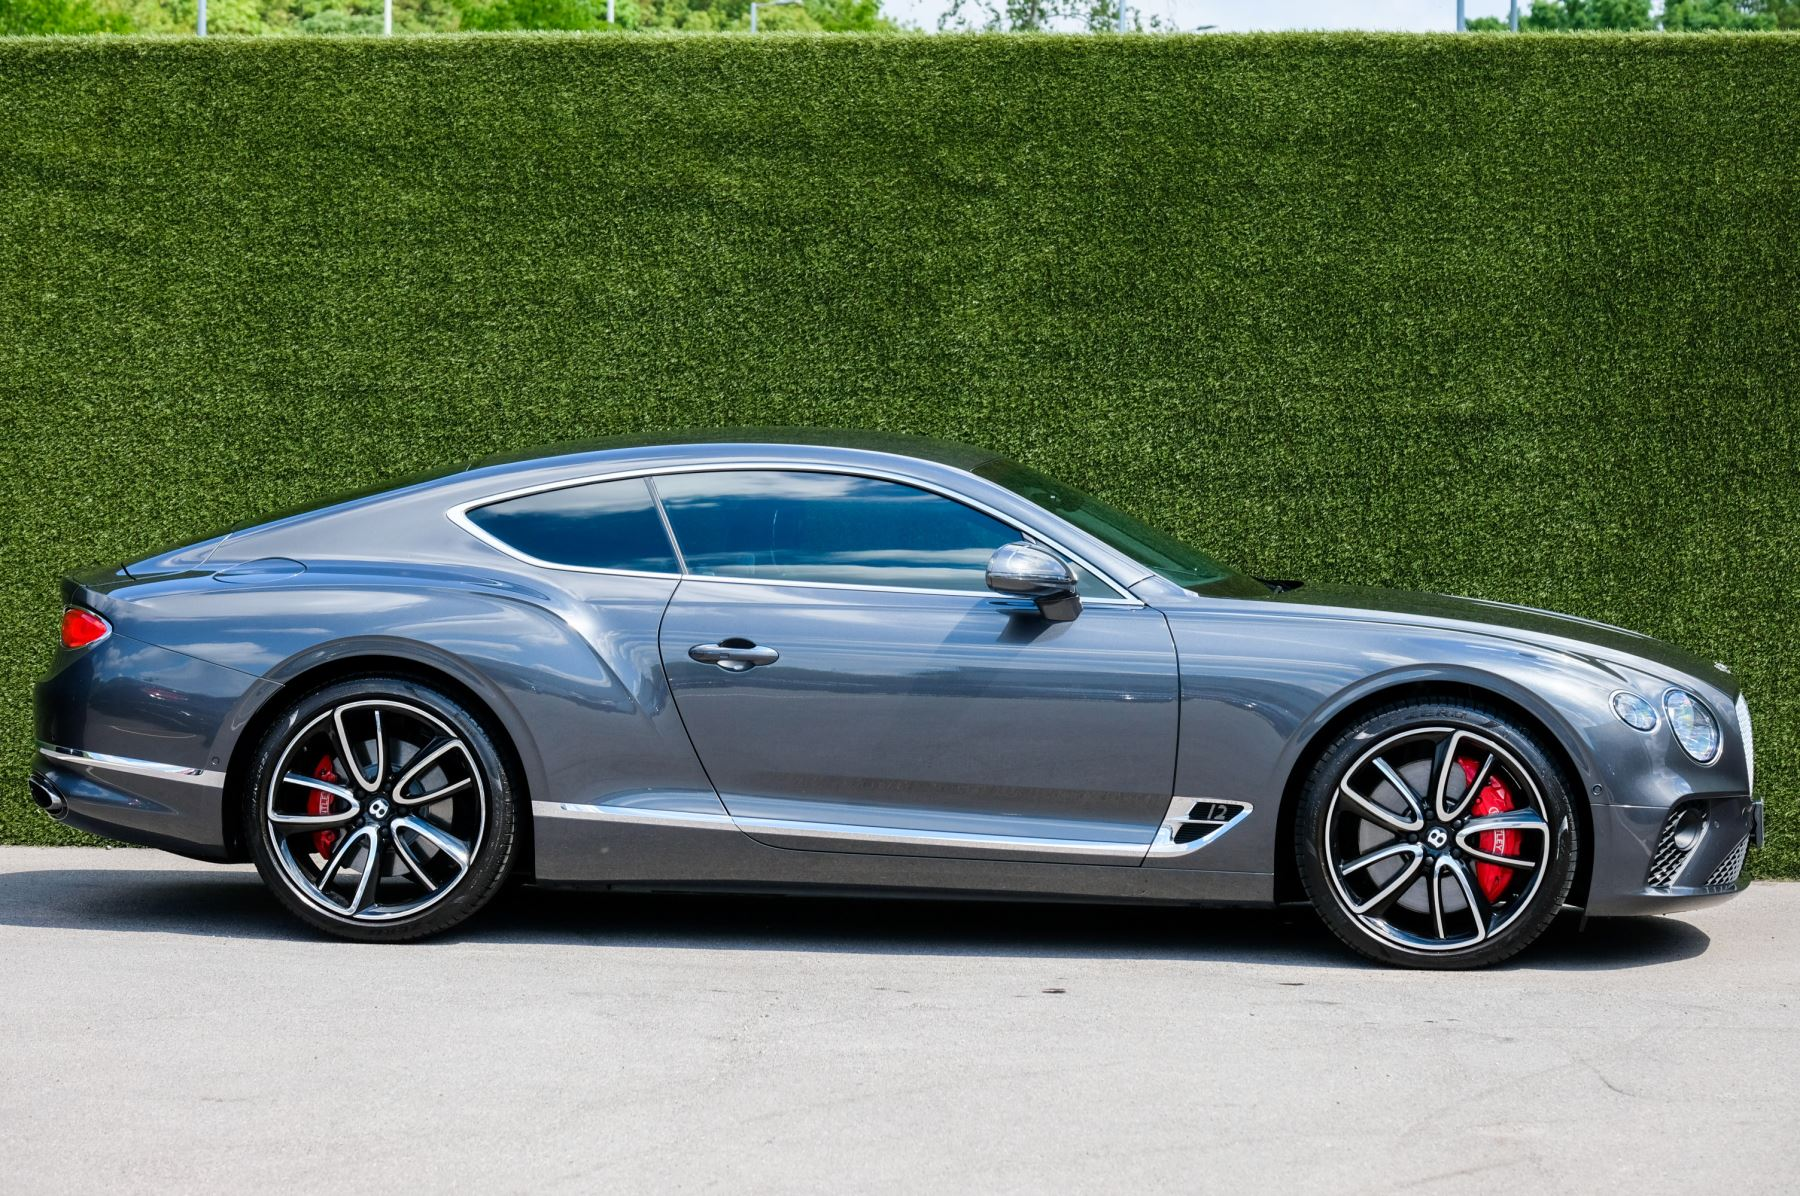 Bentley Continental GT 6.0 W12 - Mulliner Driving Specification image 3